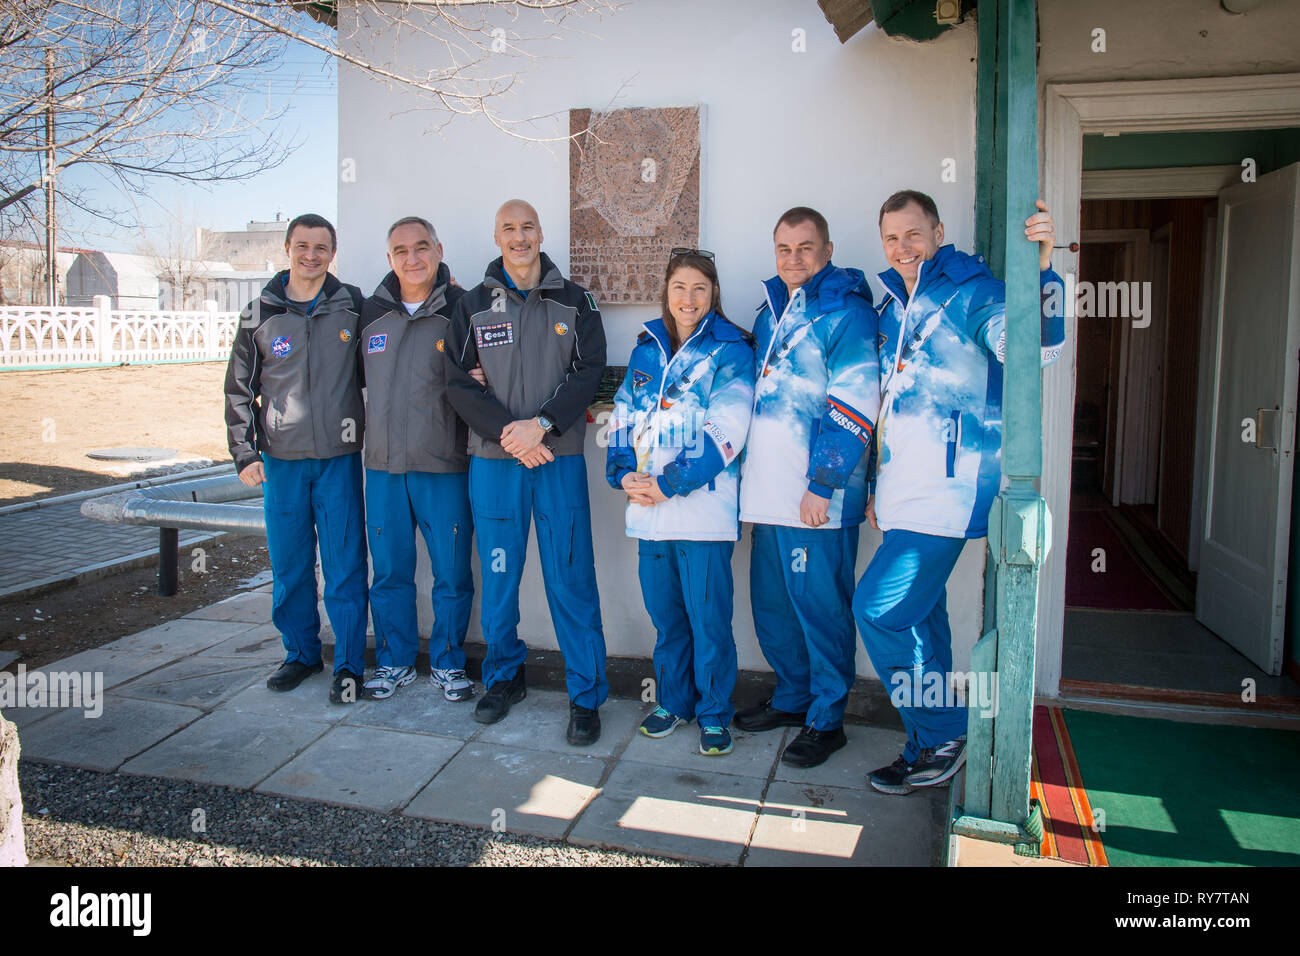 International Space Station Expedition 59 prime and backup crew members pose for a group photo outside the cottage that Yuri Gagarin slept in the night before his historic mission at the Baikonur Cosmodrome March 10, 2019 in Baikonur, Kazakhstan. From left to right are the backup crew members, Drew Morgan of NASA, Alexander Skvortsov of Roscosmos and Luca Parmitano of the European Space Agency, and the prime crew members, Christina Koch of NASA, Alexey Ovchinin of Roscosmos and Nick Hague of NASA. Expedition 59 crew will launch March 14th onboard the Soyuz MS-12 spacecraft for a six-and-a-half - Stock Image